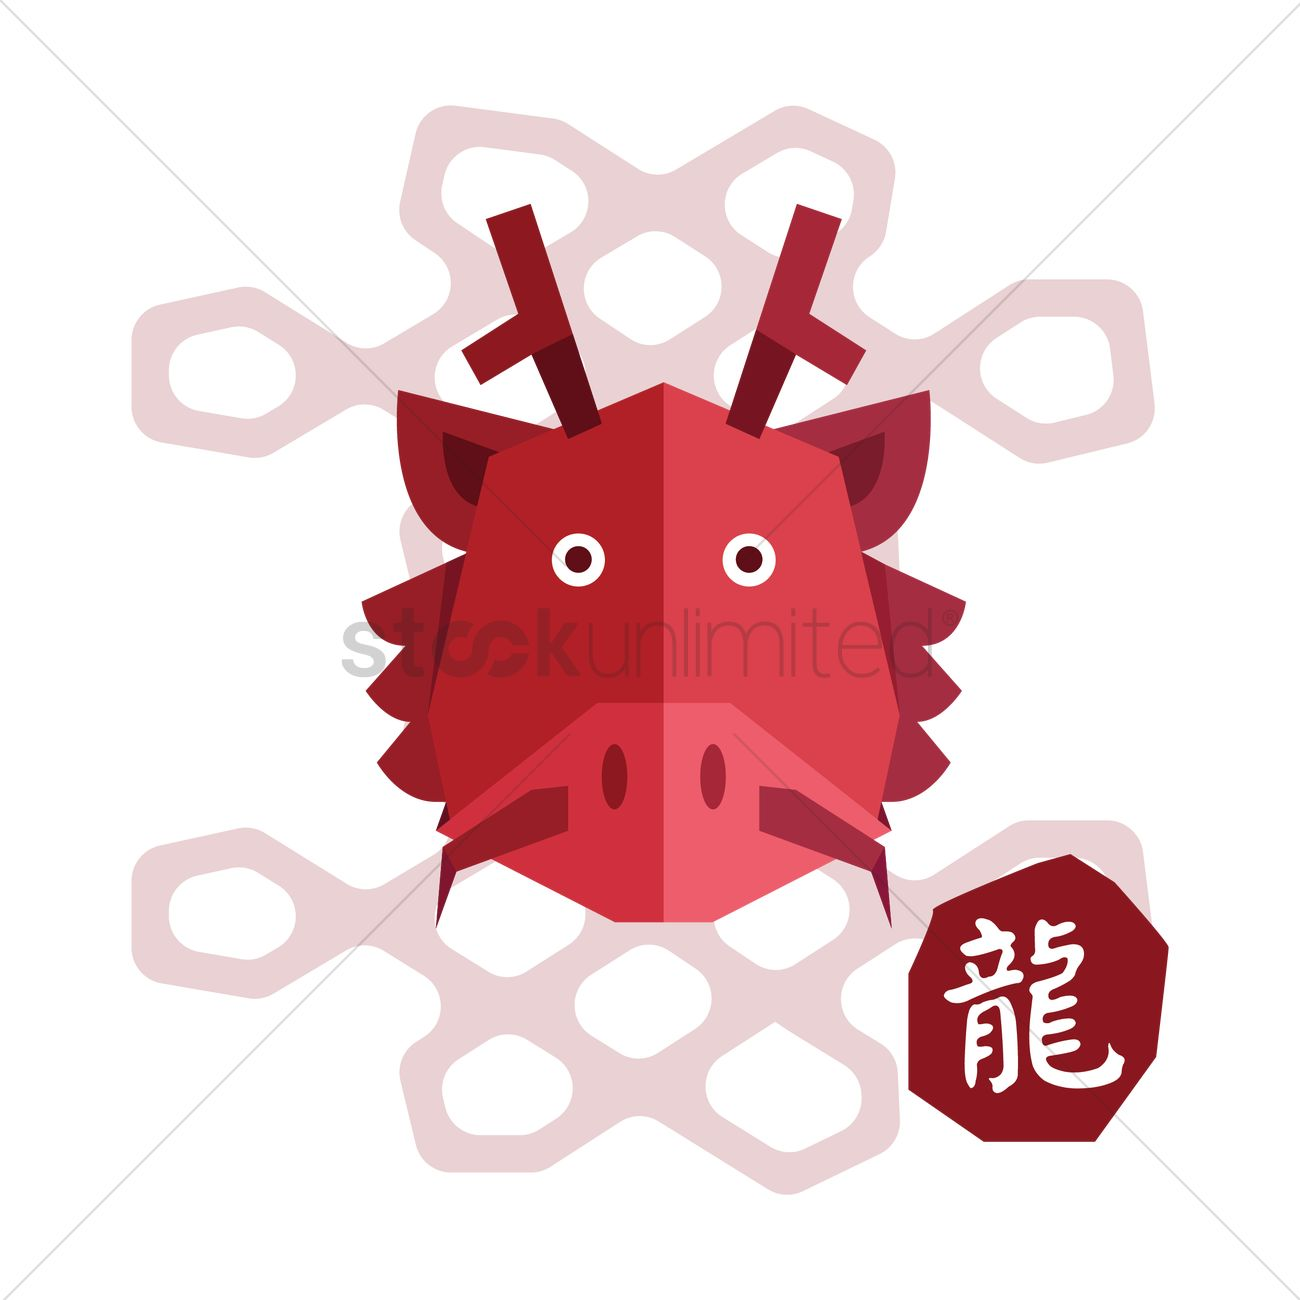 Chinese zodiac dragon design Vector Image - 1425592 | StockUnlimited